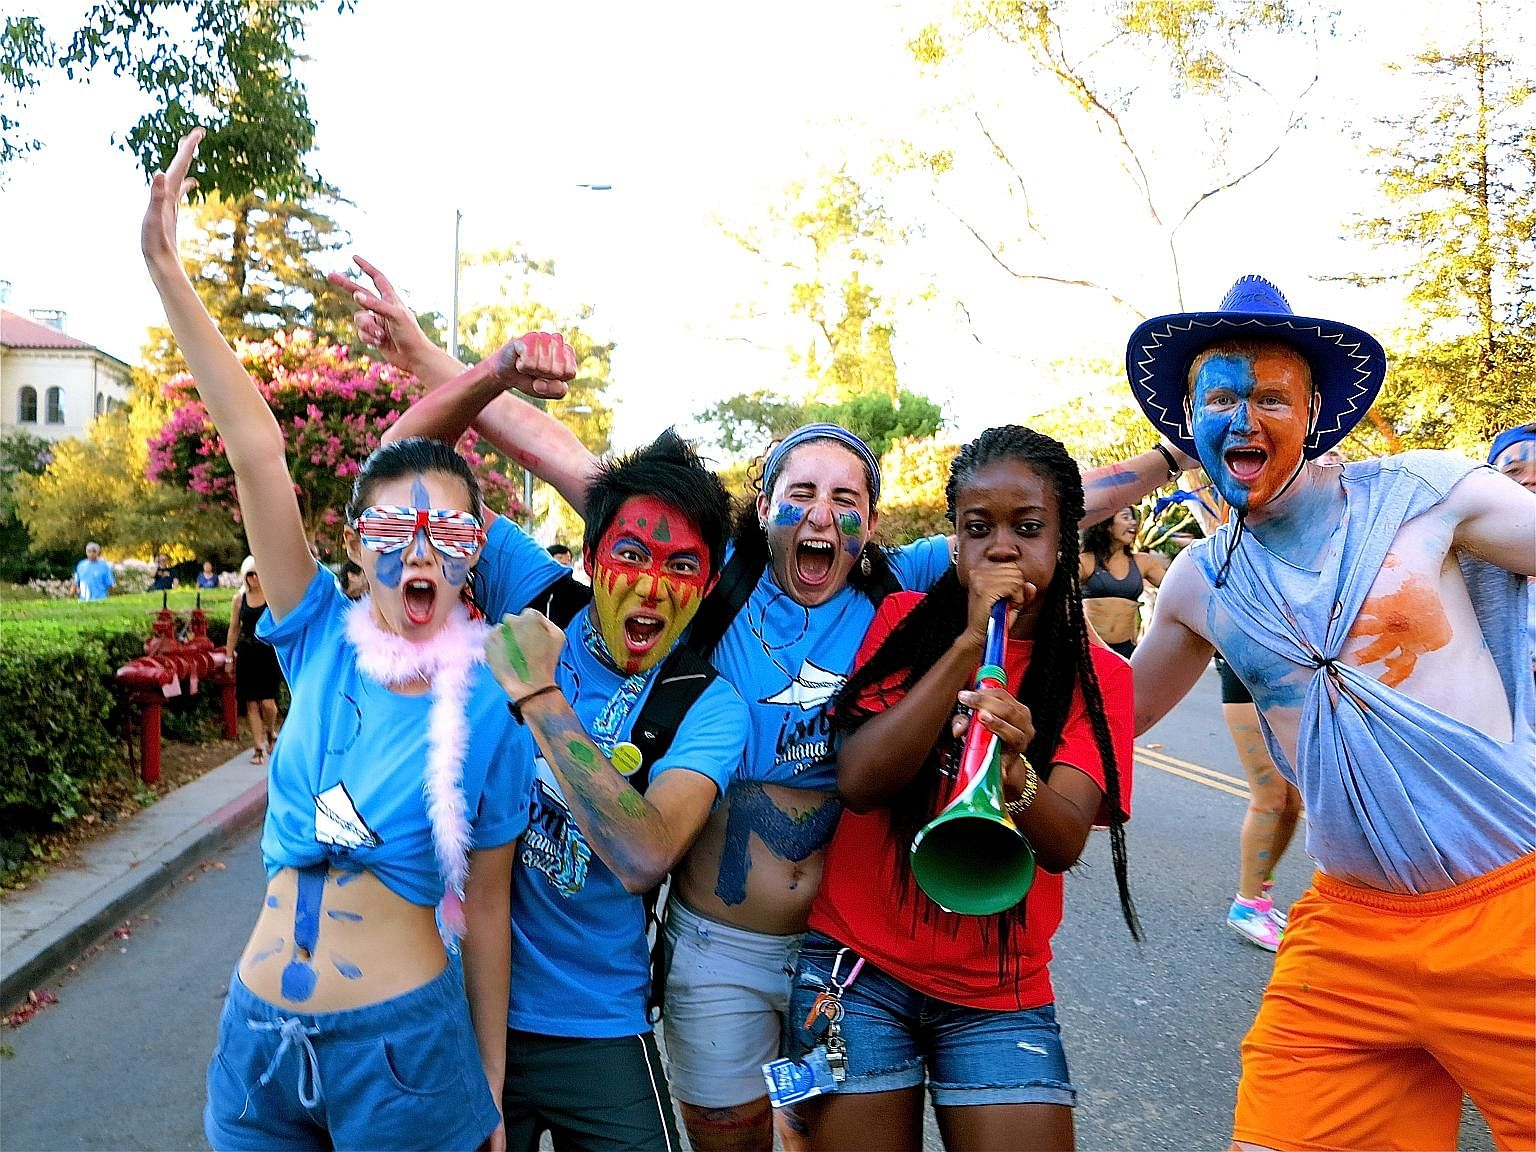 The writer (second from left) with his friends welcoming freshmen during an orientation event at Pomona College in Claremont, California, in 2012.